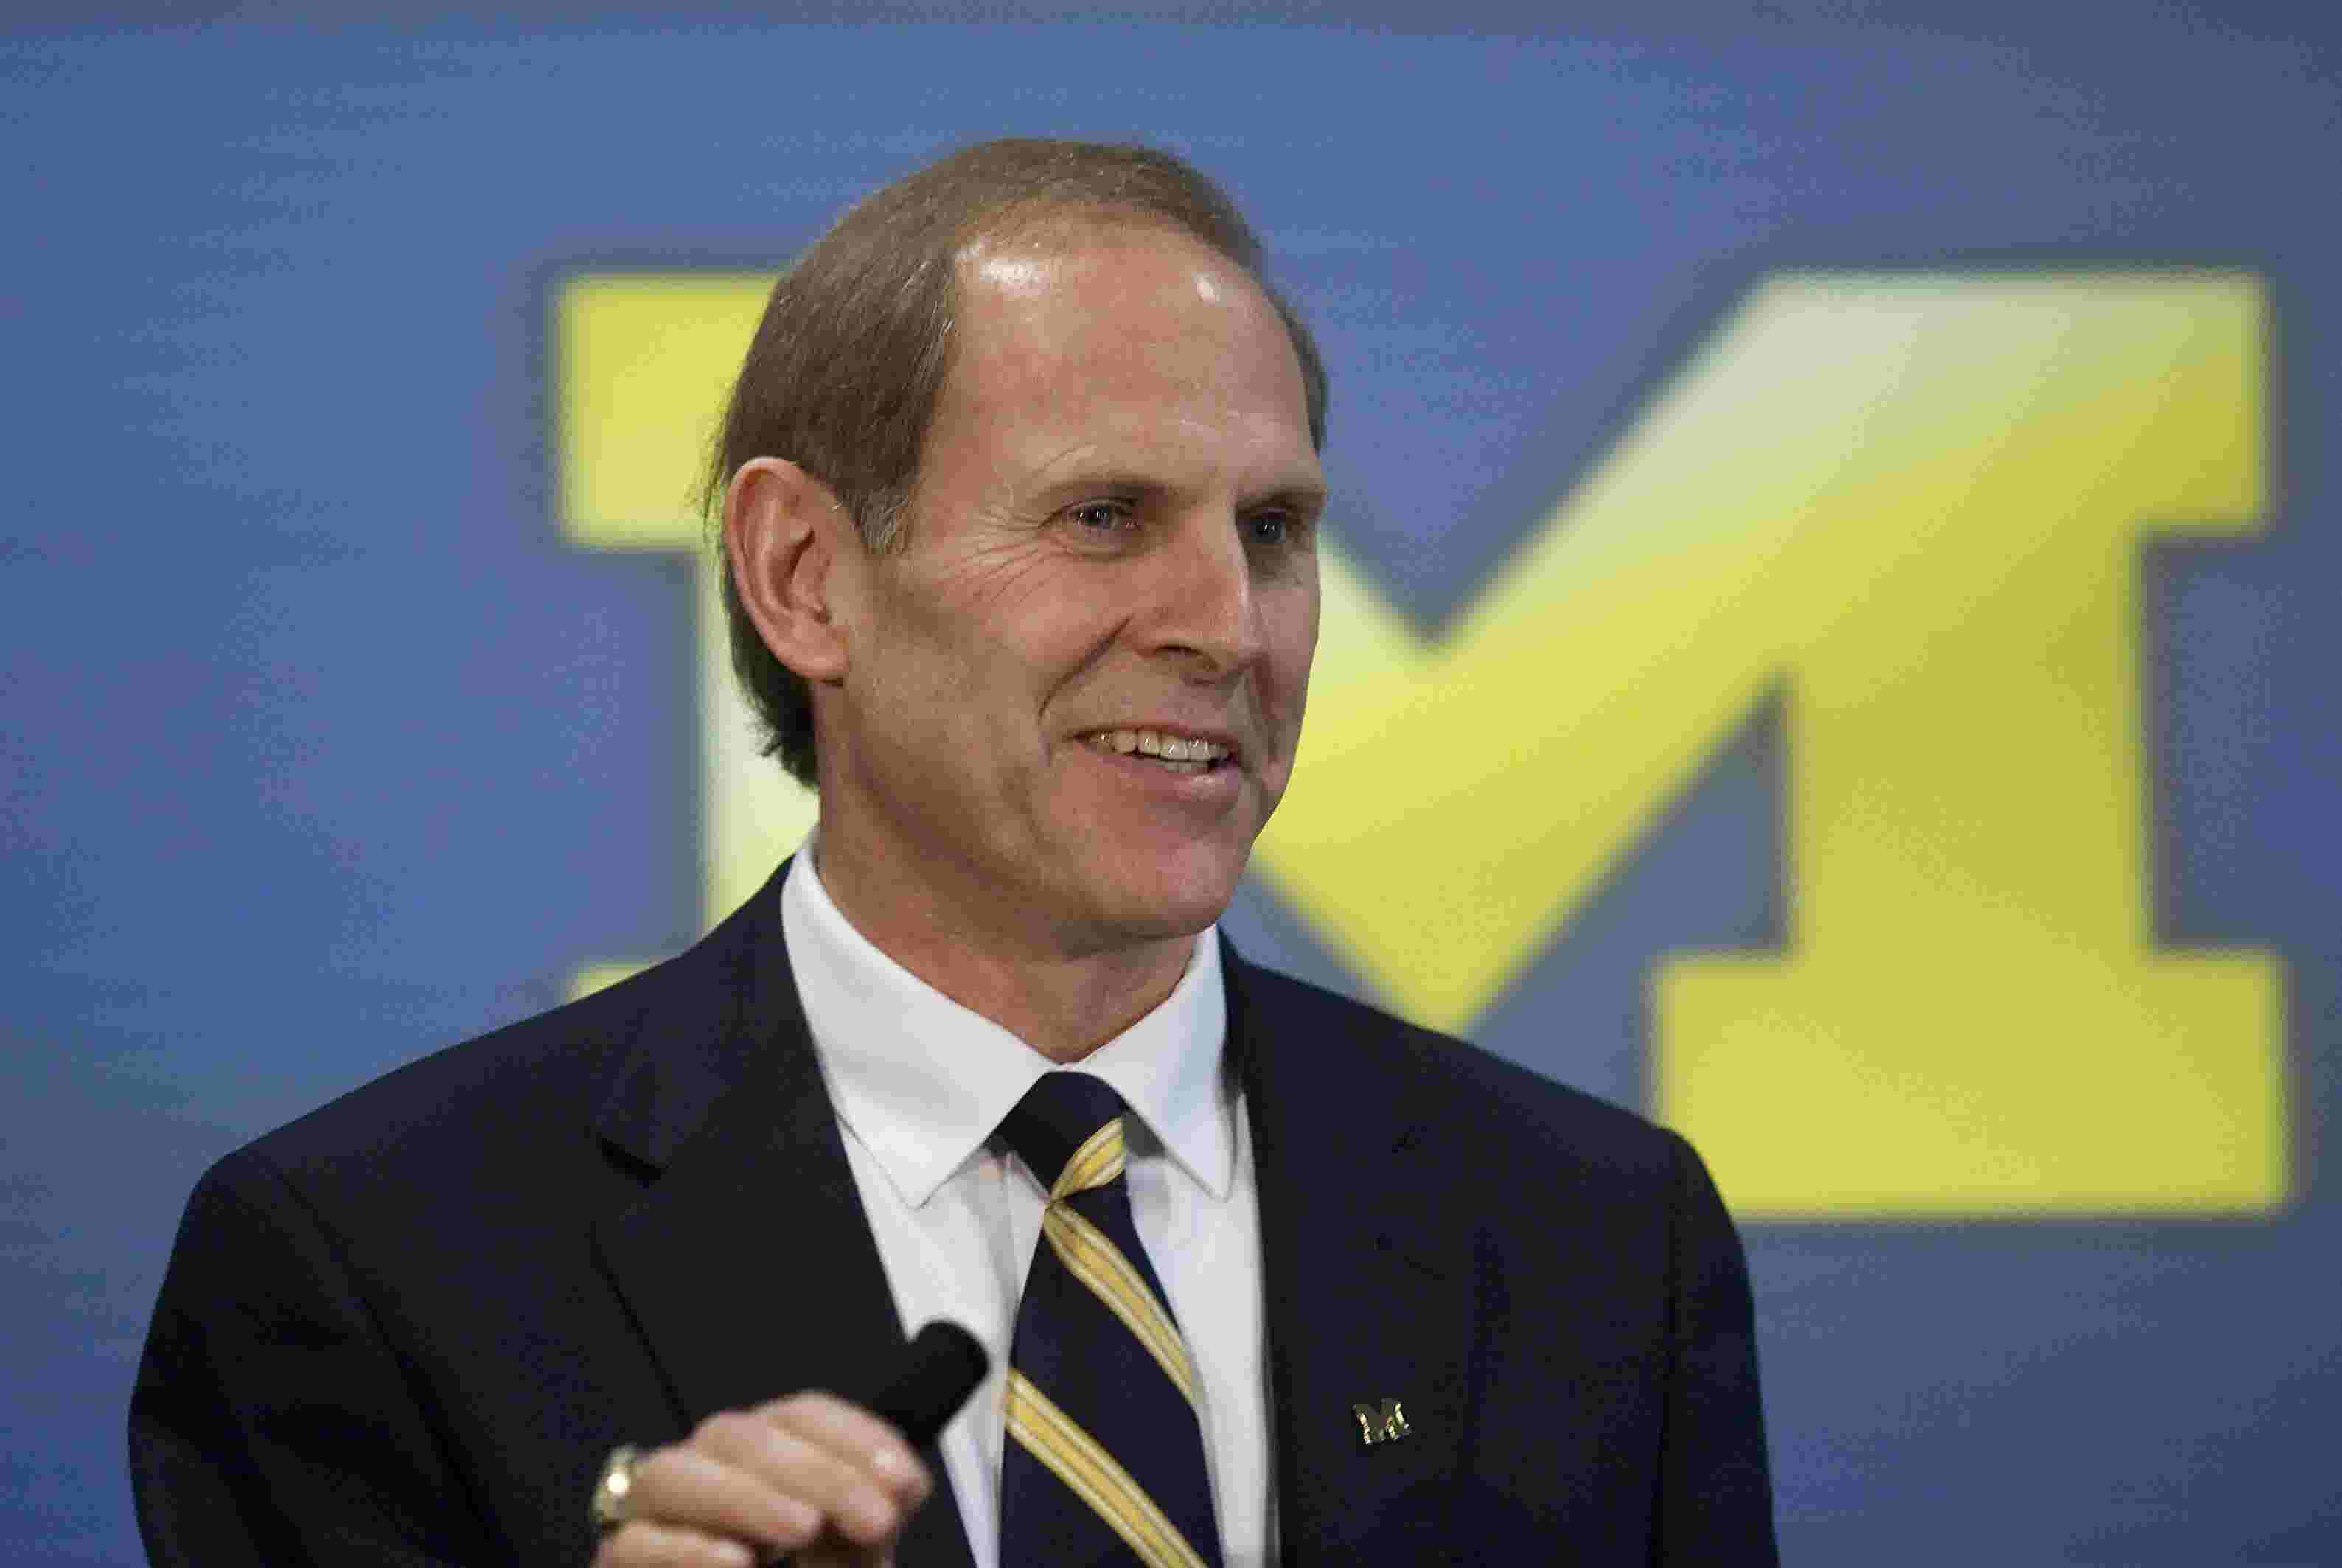 John Beilein on leaving Michigan for NBA: 'It was the right thing to do'